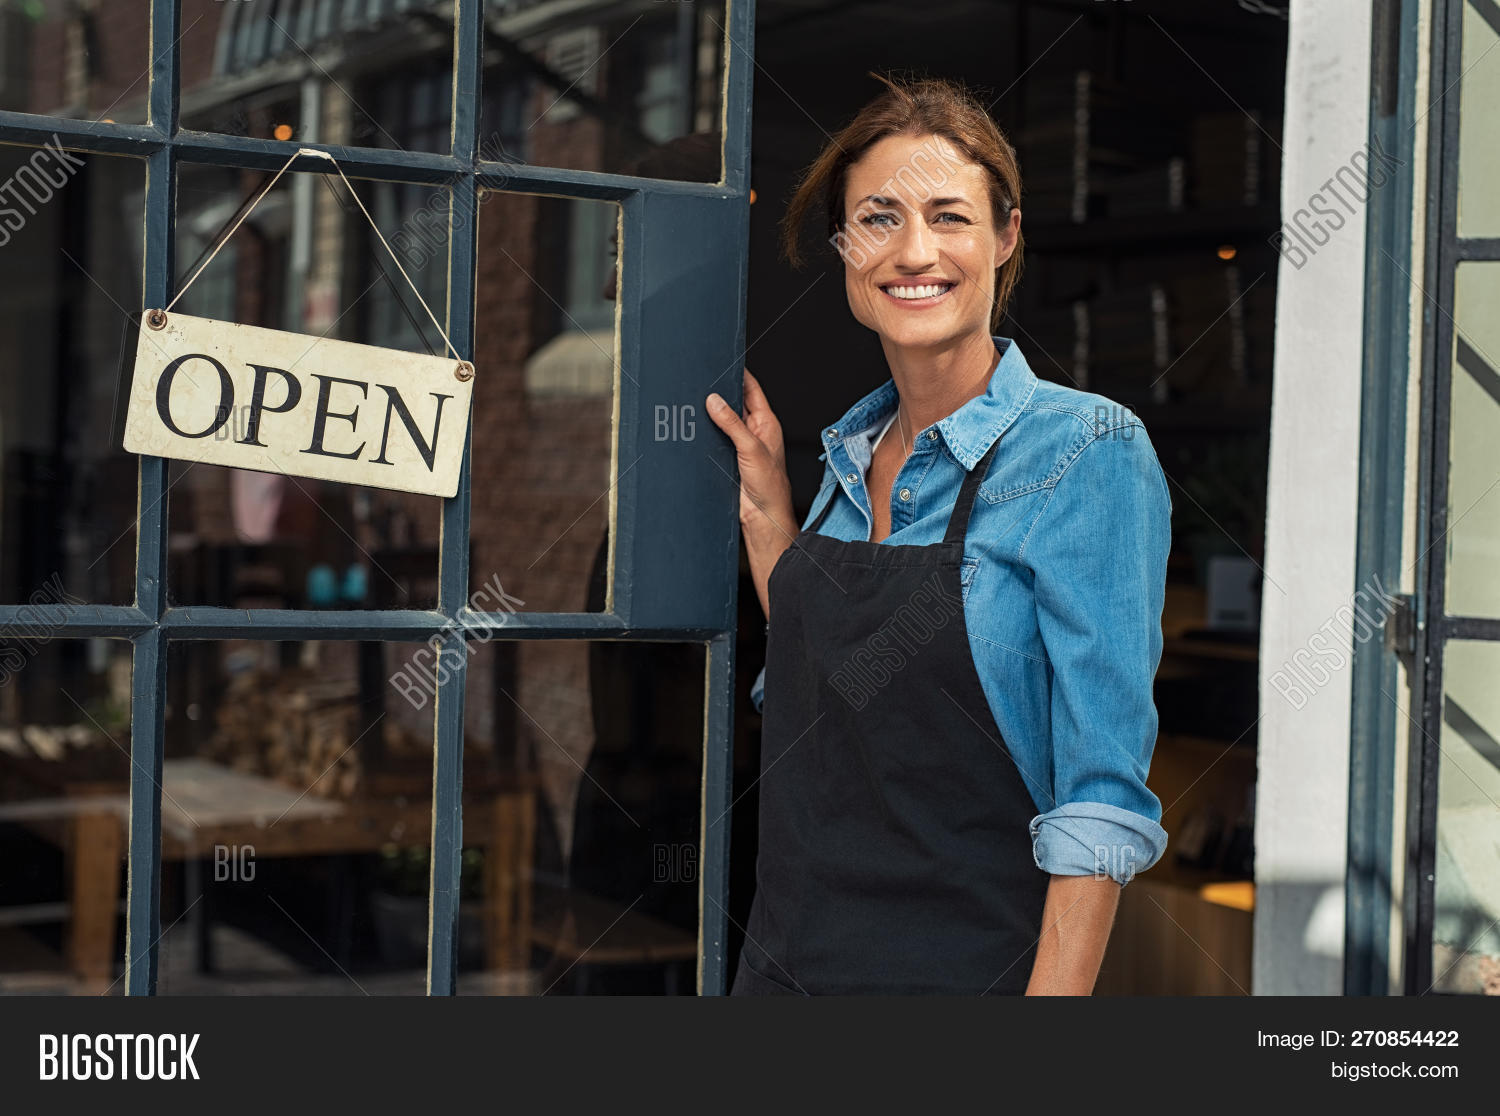 40s,apron,attractive,business,cafe,cafeteria,cheerful,coffee,coffee shop,confident,door,doorway,entrepreneur,food,friendly,happy,looking,looking at camera,mature,mid,mid adult woman,middle aged woman,new,occupation,open,open sign,owner,people,portrait,pride,proud,proud woman,restaurant,satisfied,service,shop,sign,small,small business,smile,staff,standing,success,successful,toothy smile,waitress,wearing apron,woman,work,worker